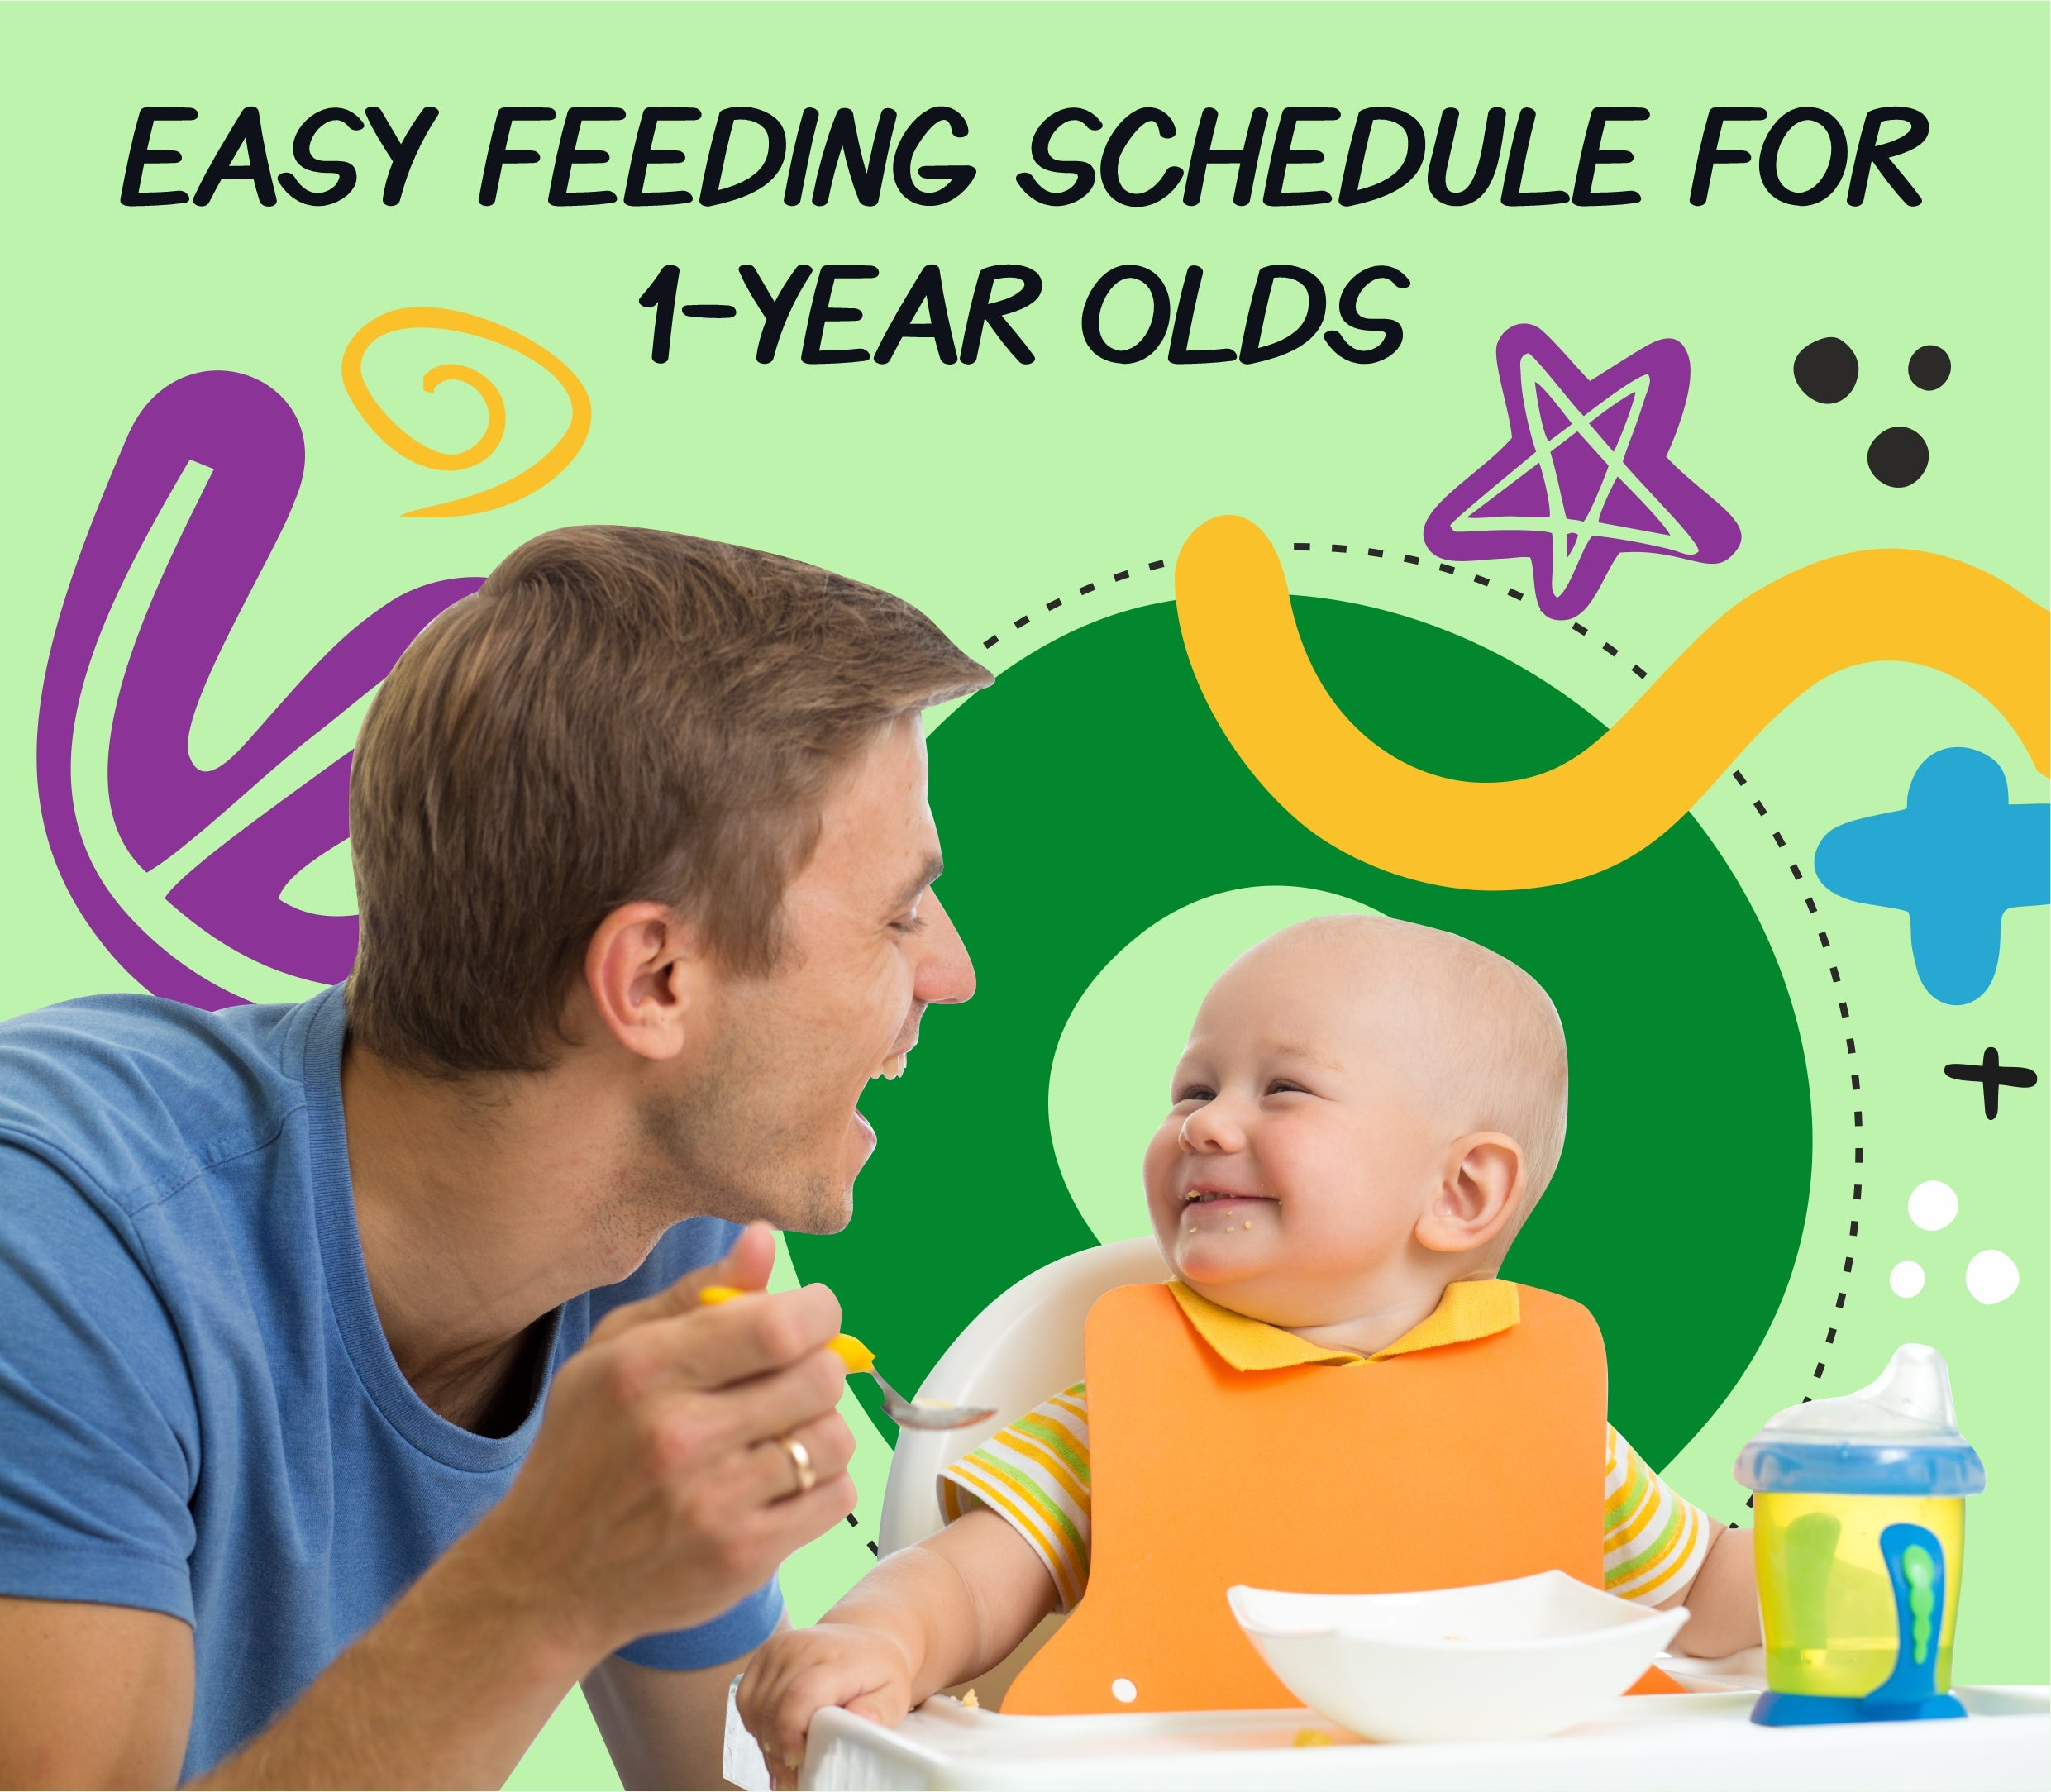 What to feed a 1-year-old?